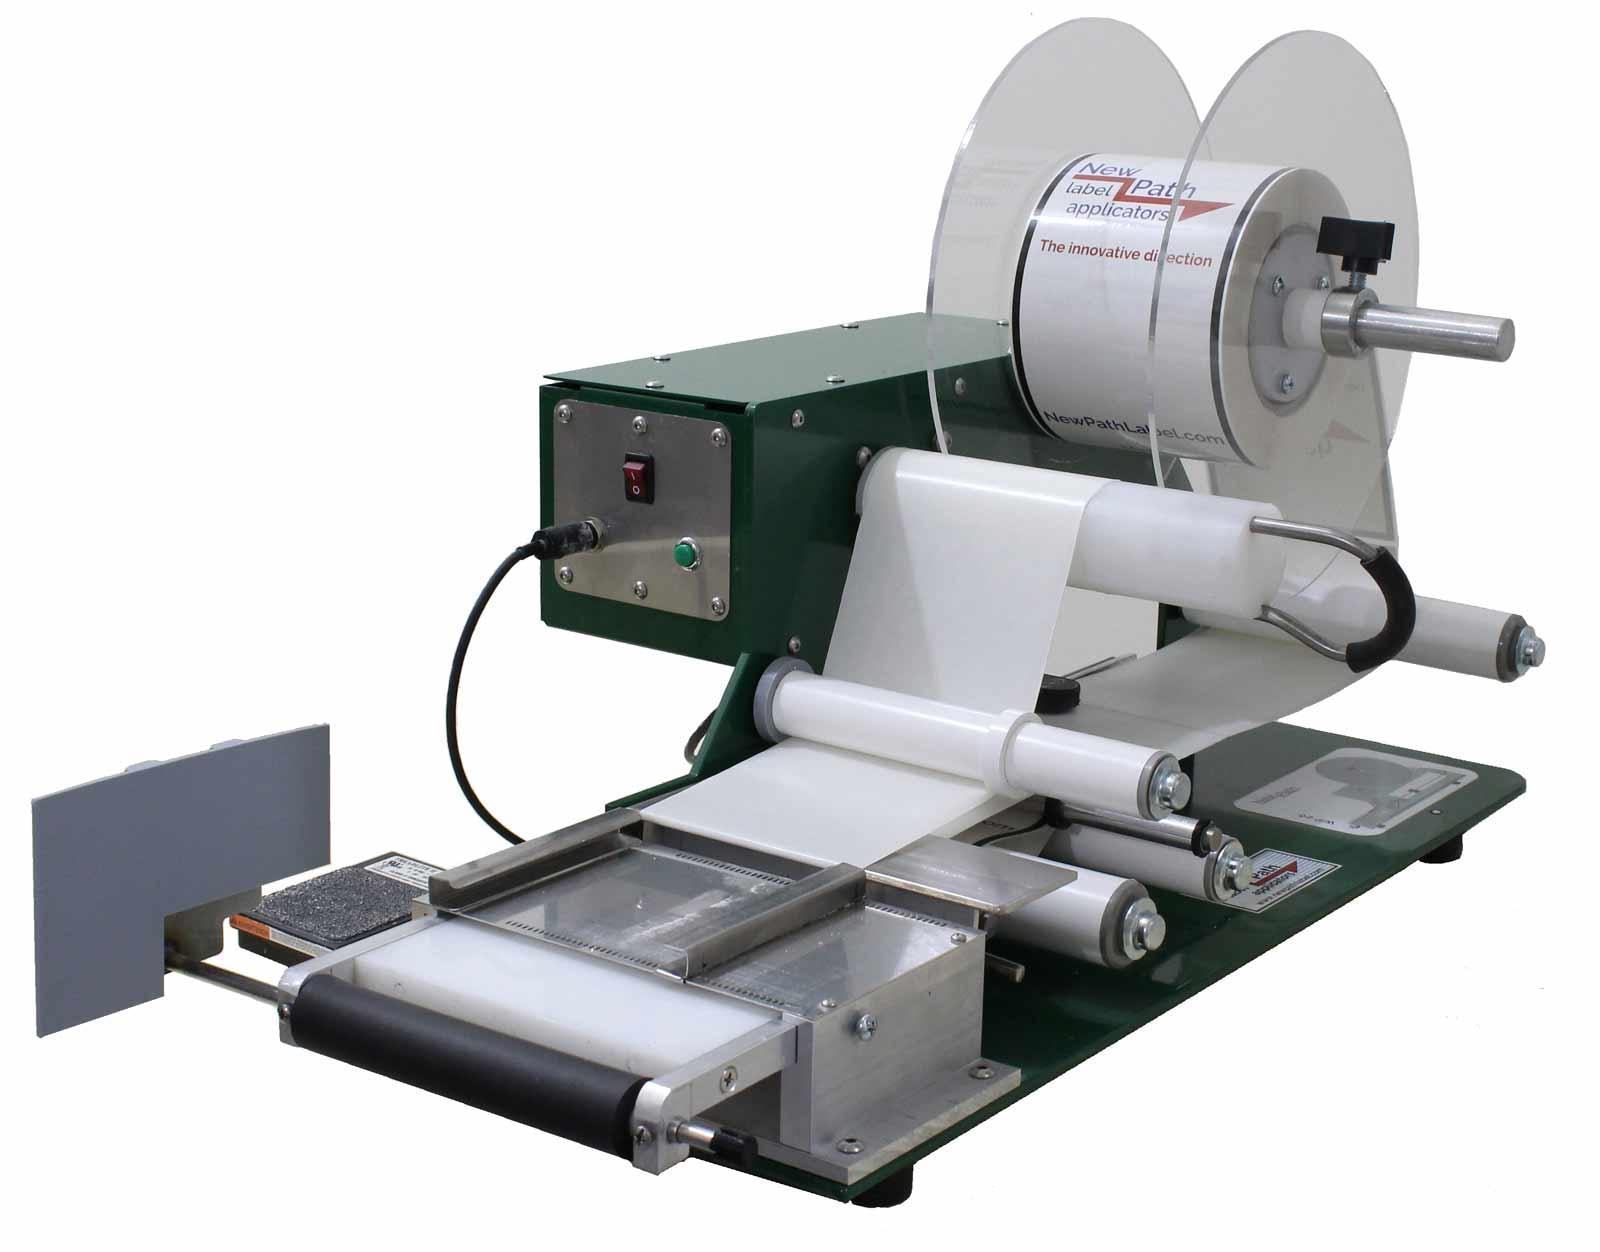 model WP20, a benchtop semiautomatic wipe-on label applicator